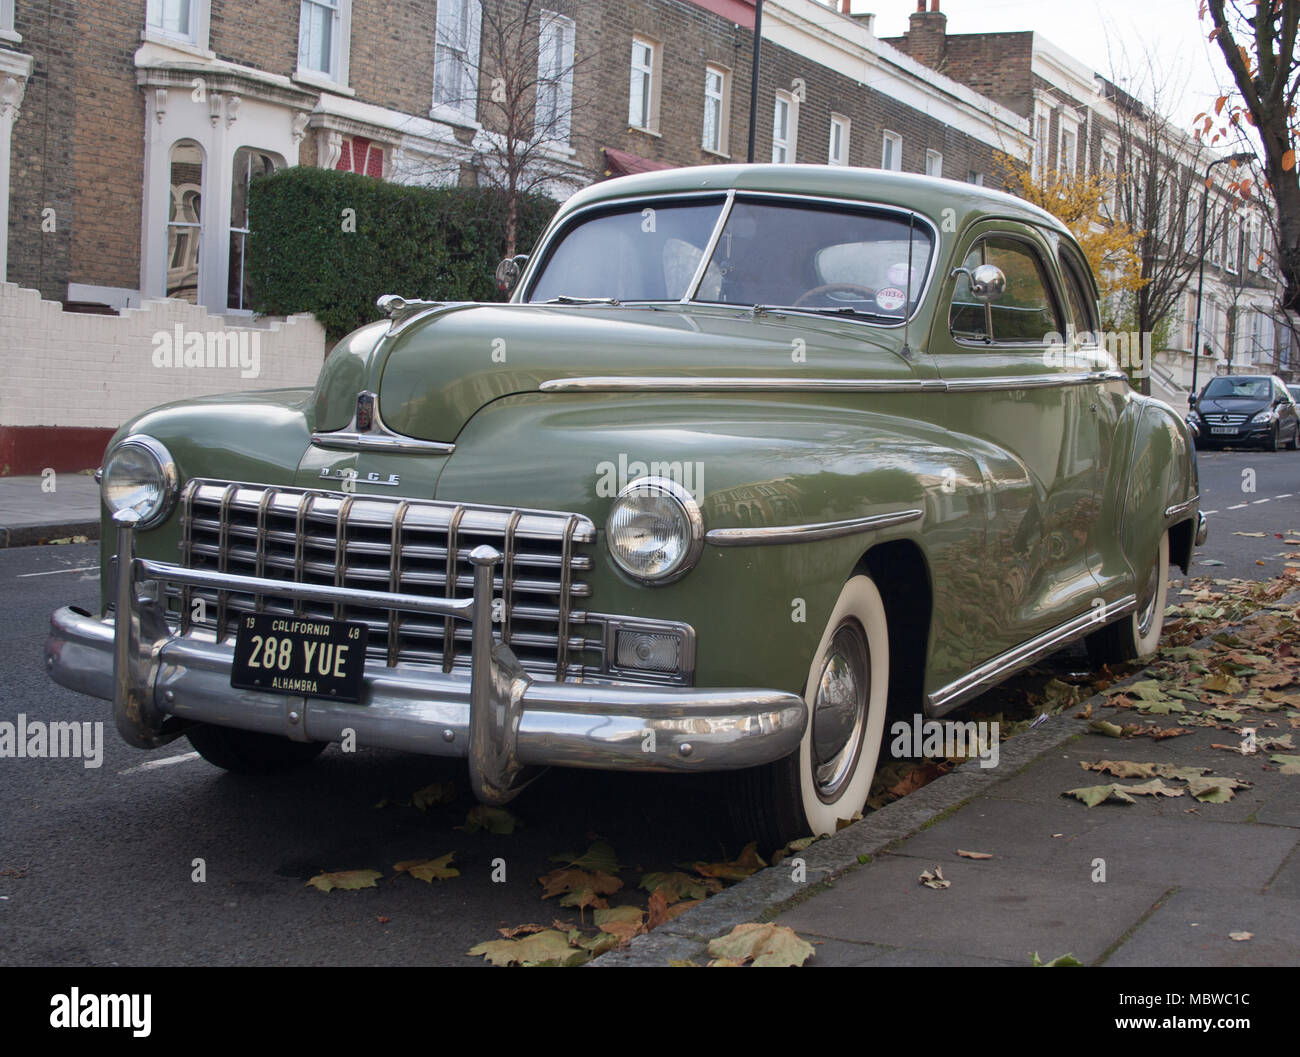 Classic Cars Stock Photos & Classic Cars Stock Images - Page 9 - Alamy